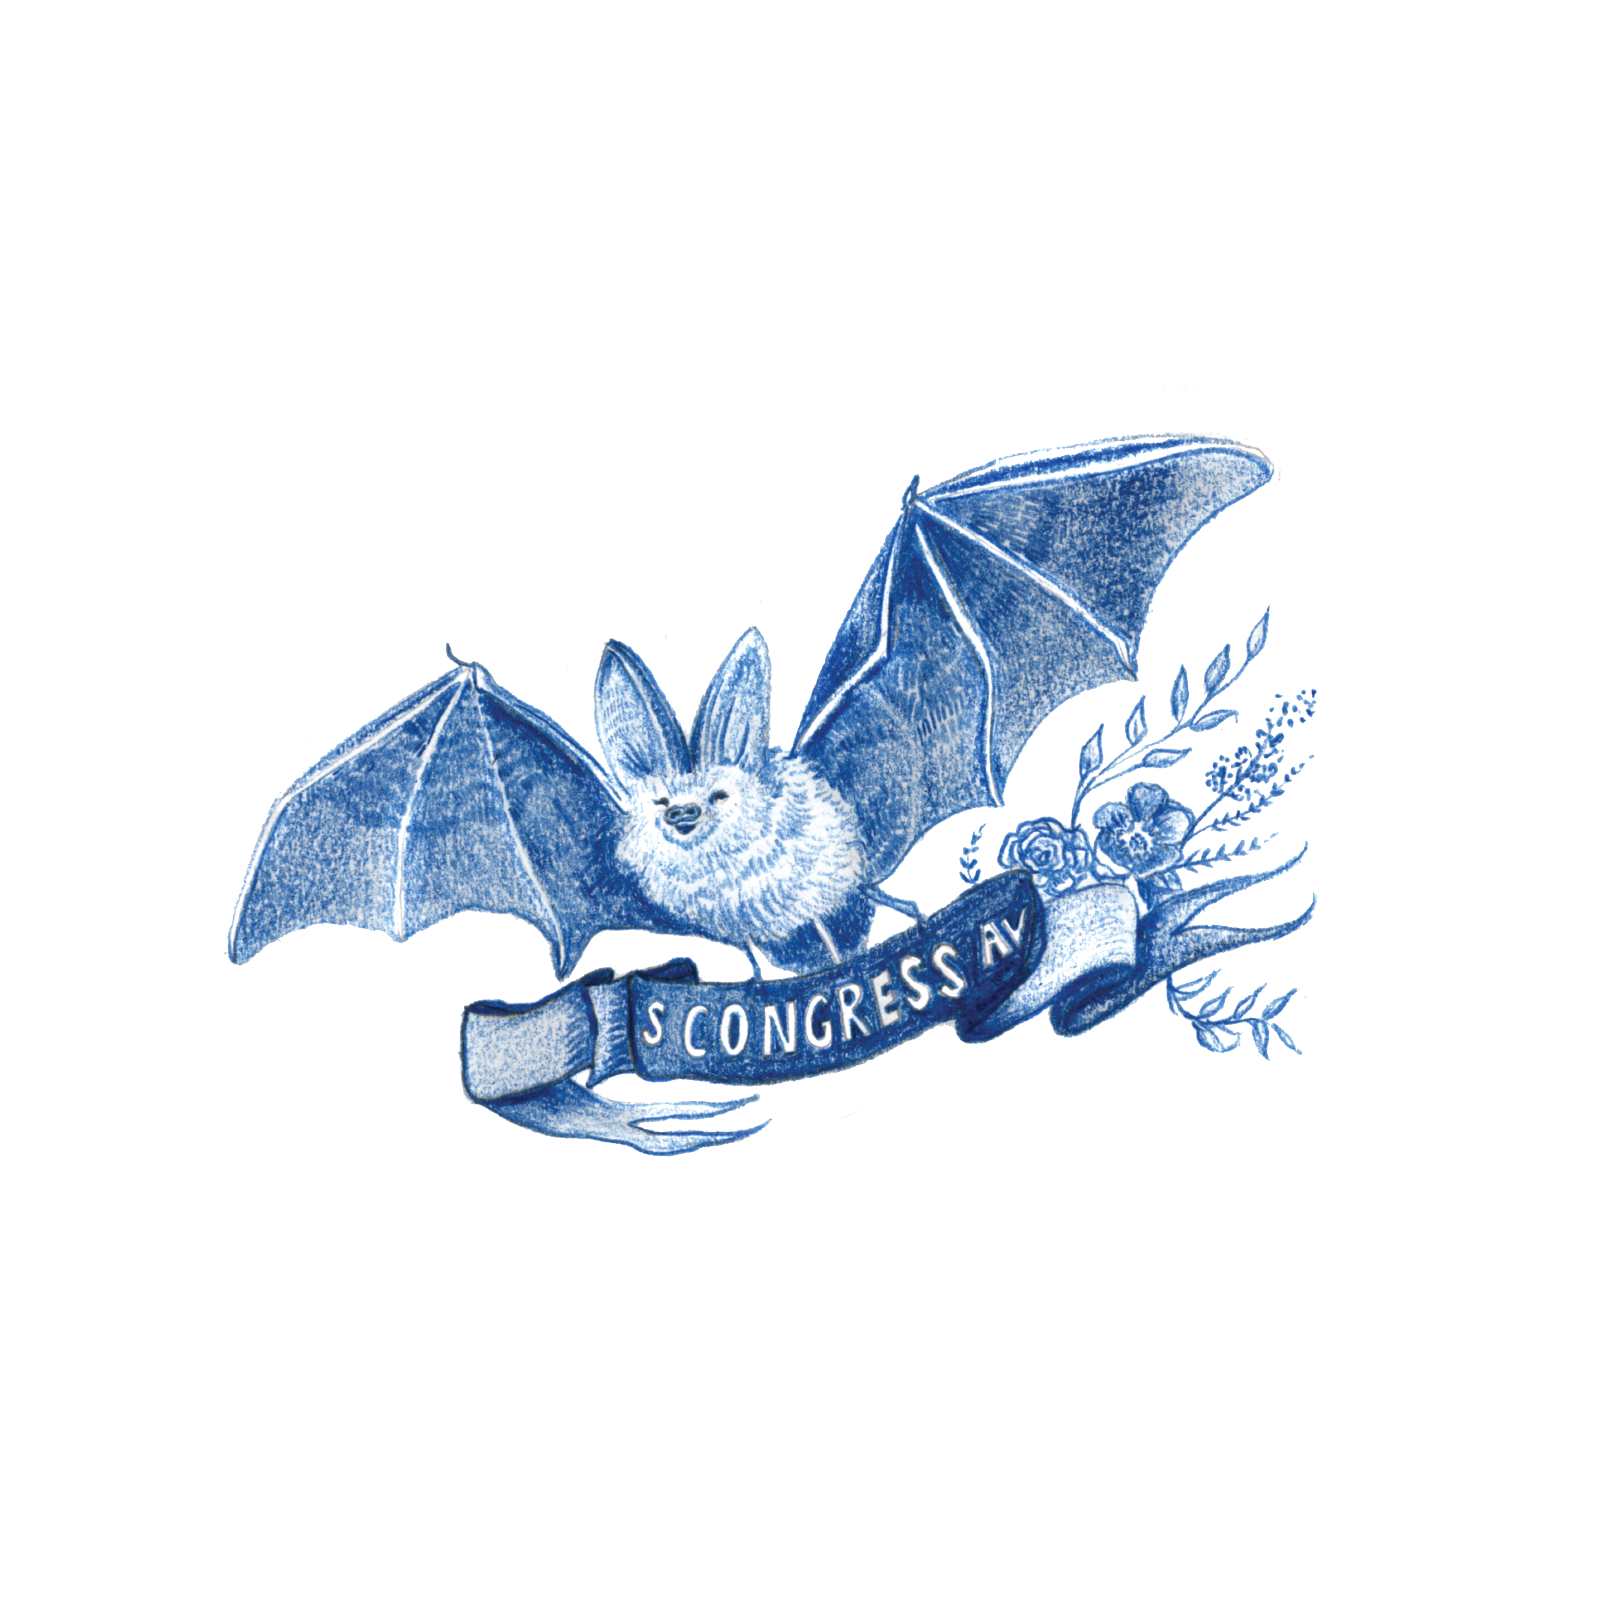 jrocro_texas toile_Bat Congress.png